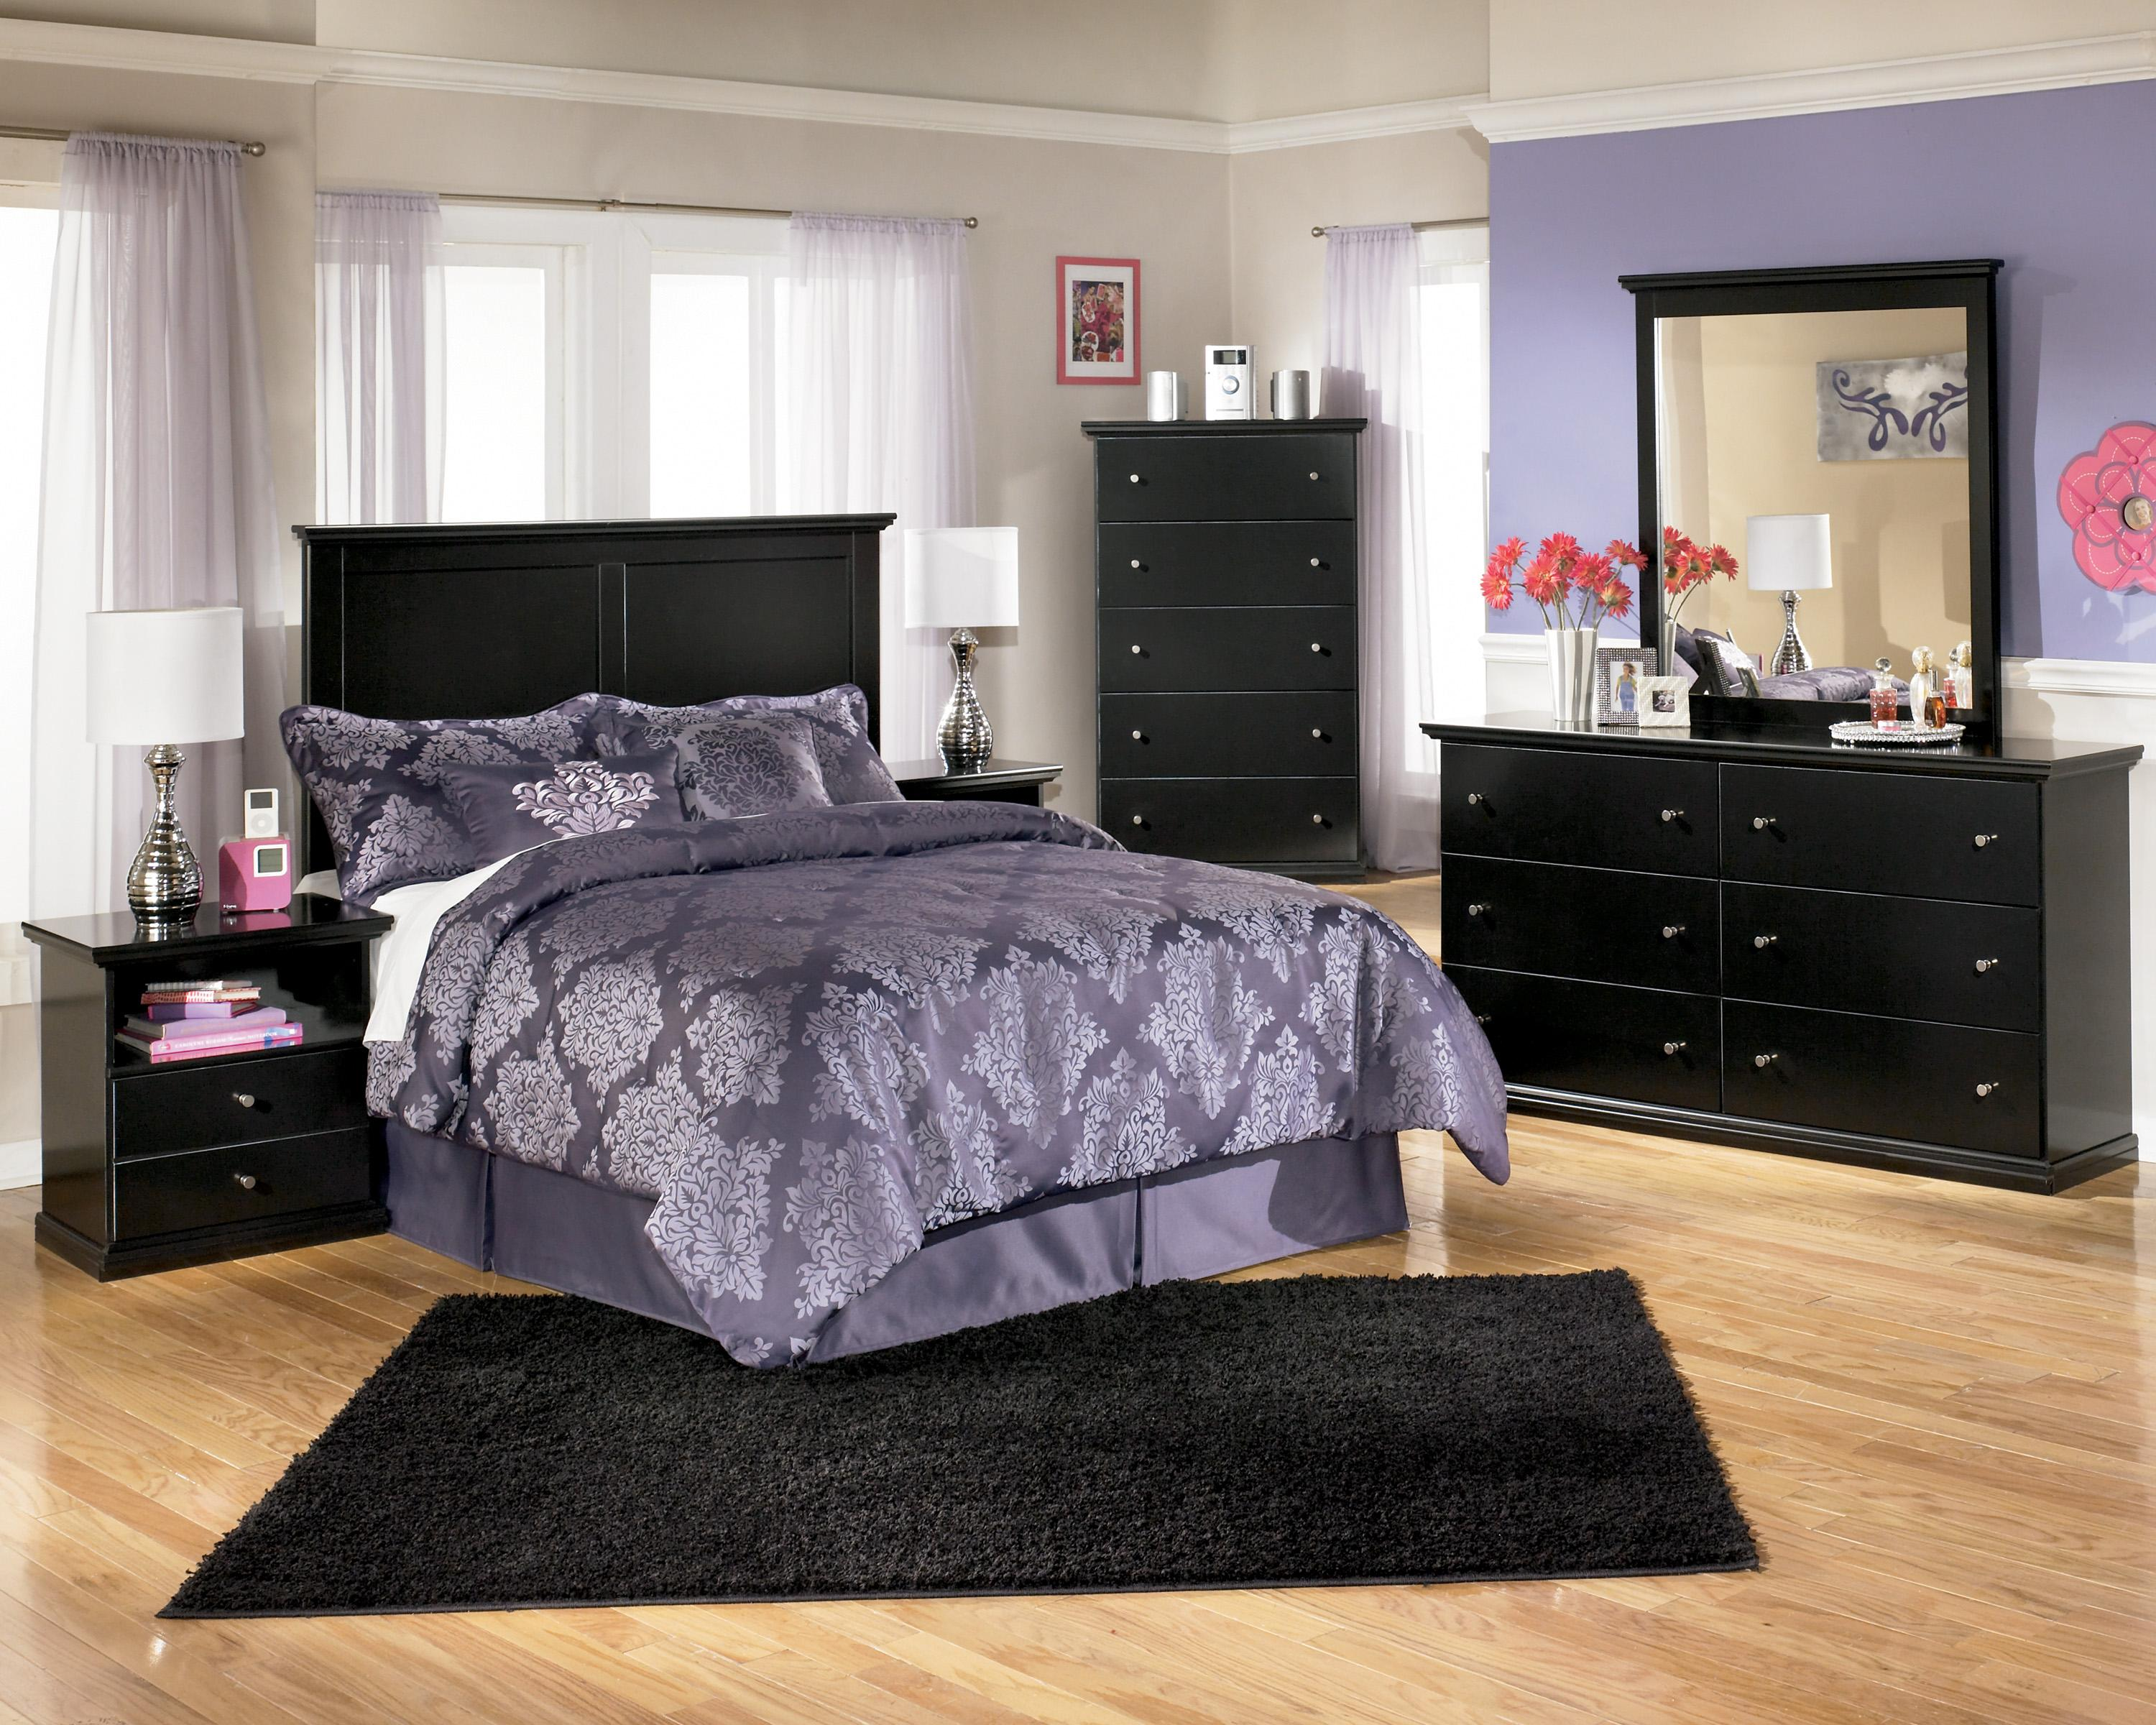 Maribel Full Bedroom Group by Signature Design by Ashley at Zak's Warehouse Clearance Center